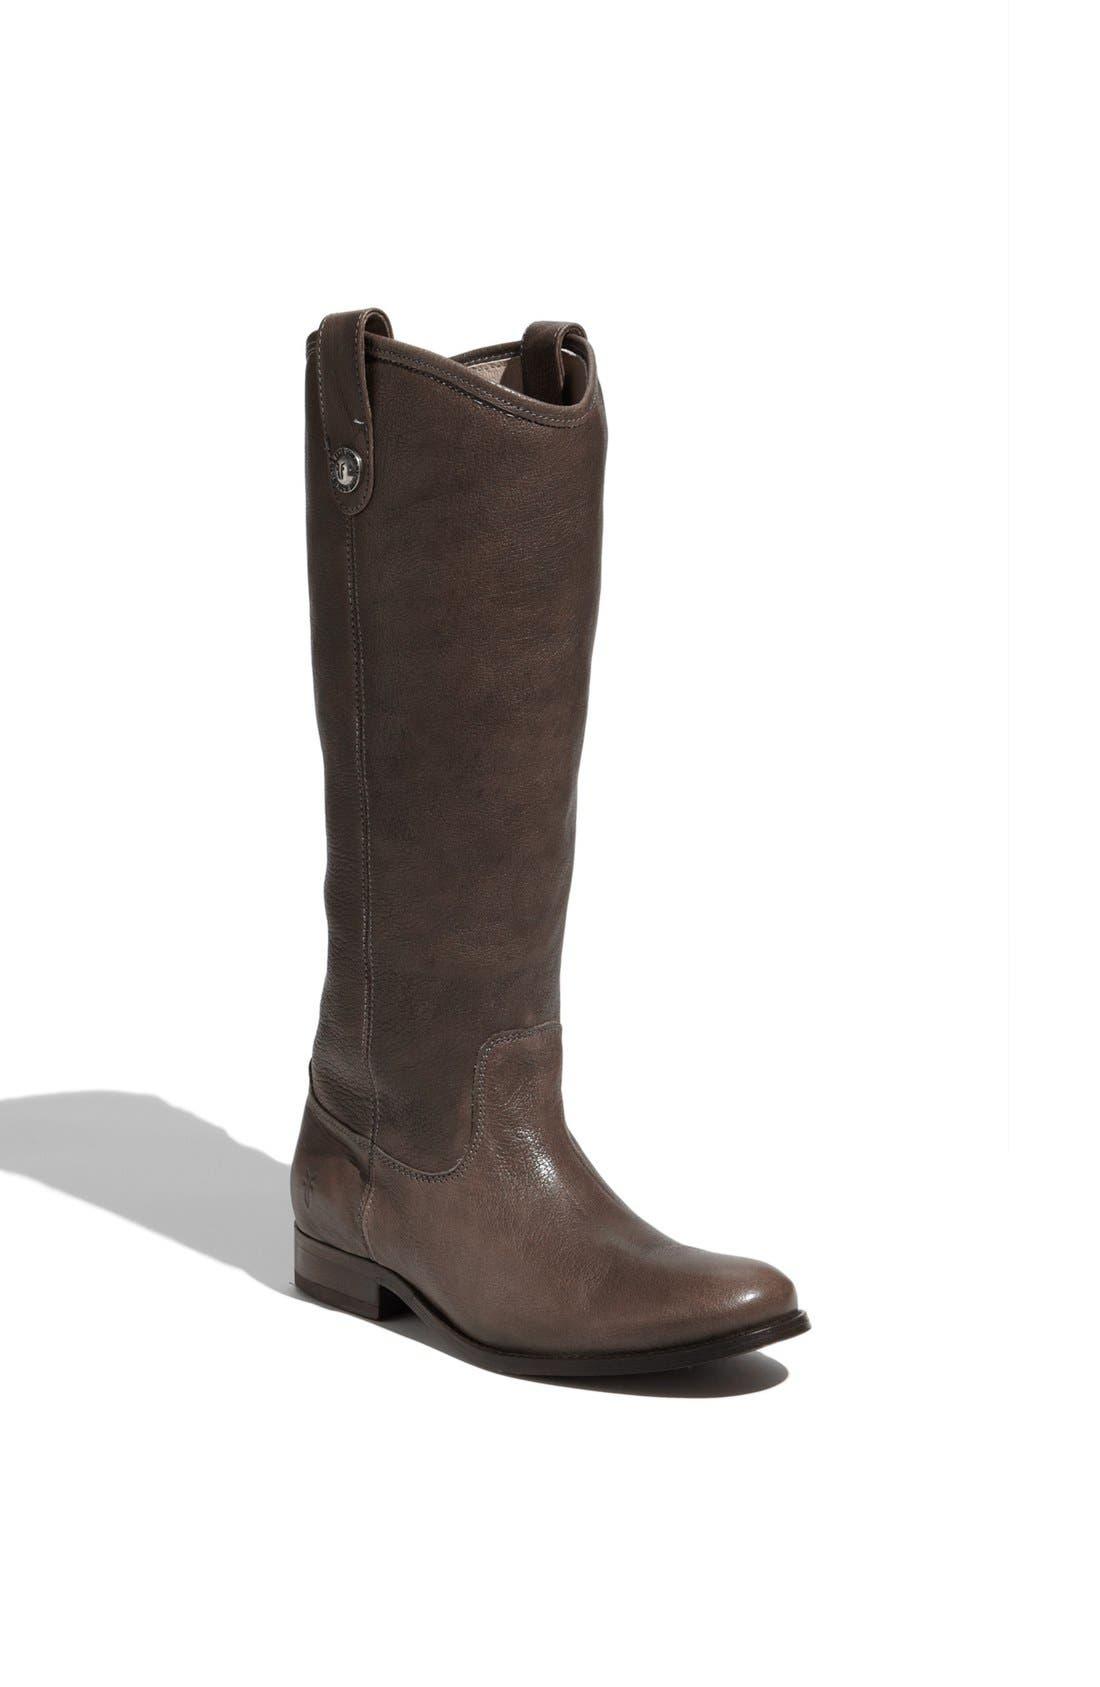 'Melissa Button' Leather Riding Boot,                             Main thumbnail 8, color,